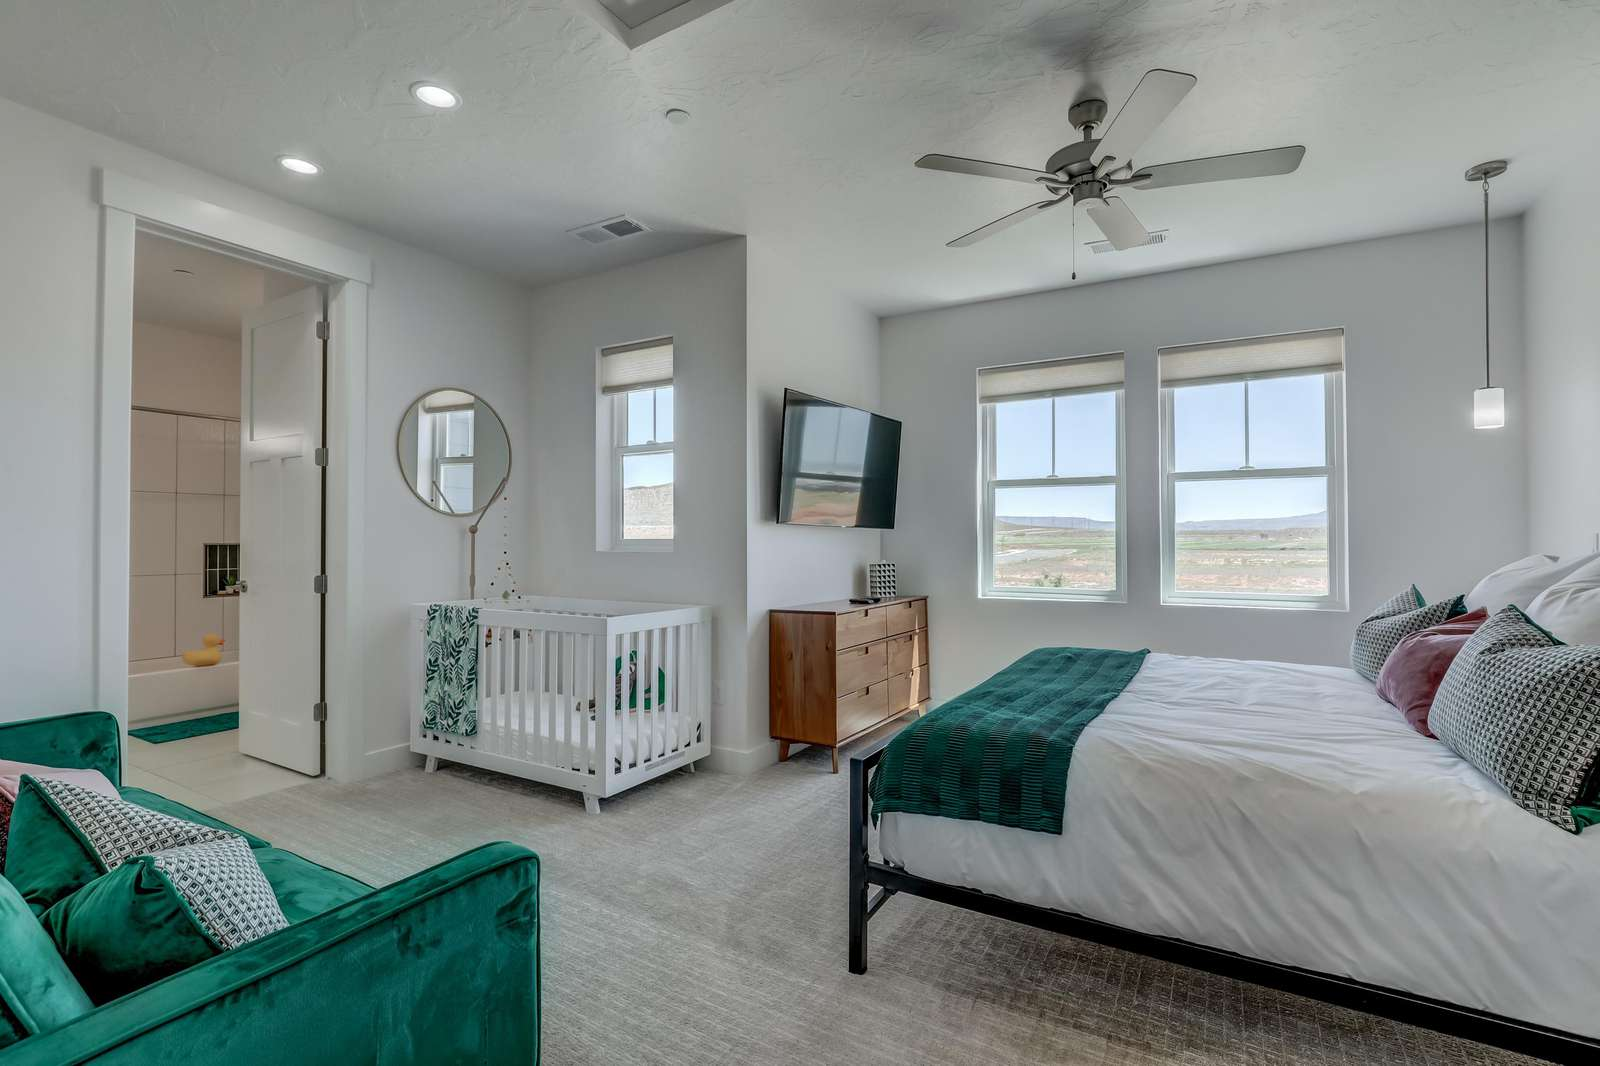 Turquoise Baby room